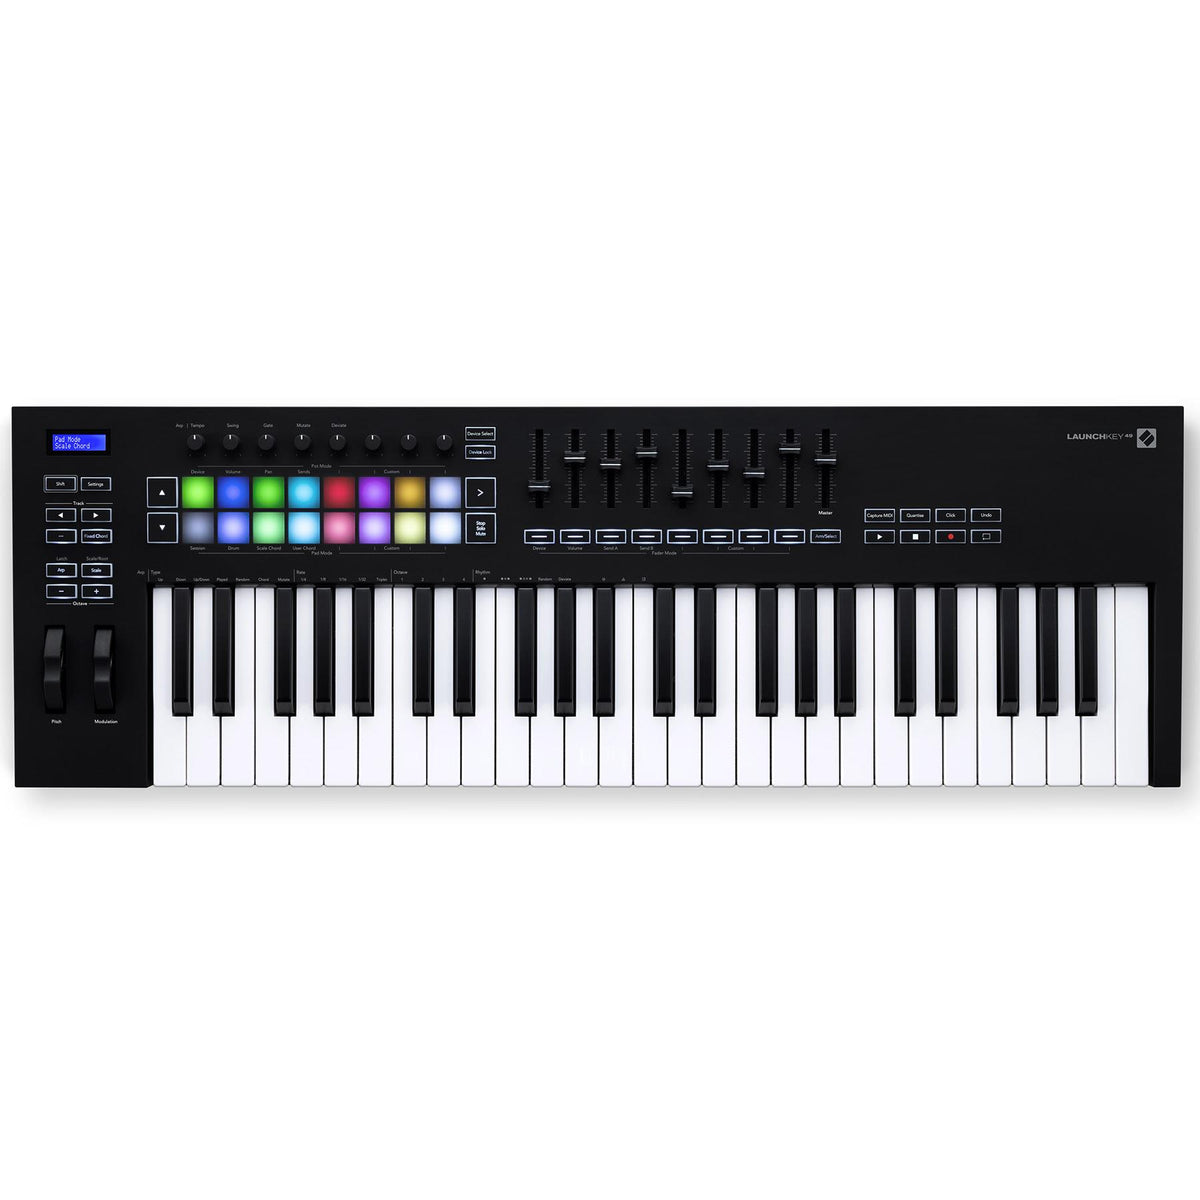 Novation Launchkey 49 MK3 USB/MIDI 49-Key Keyboard Controller